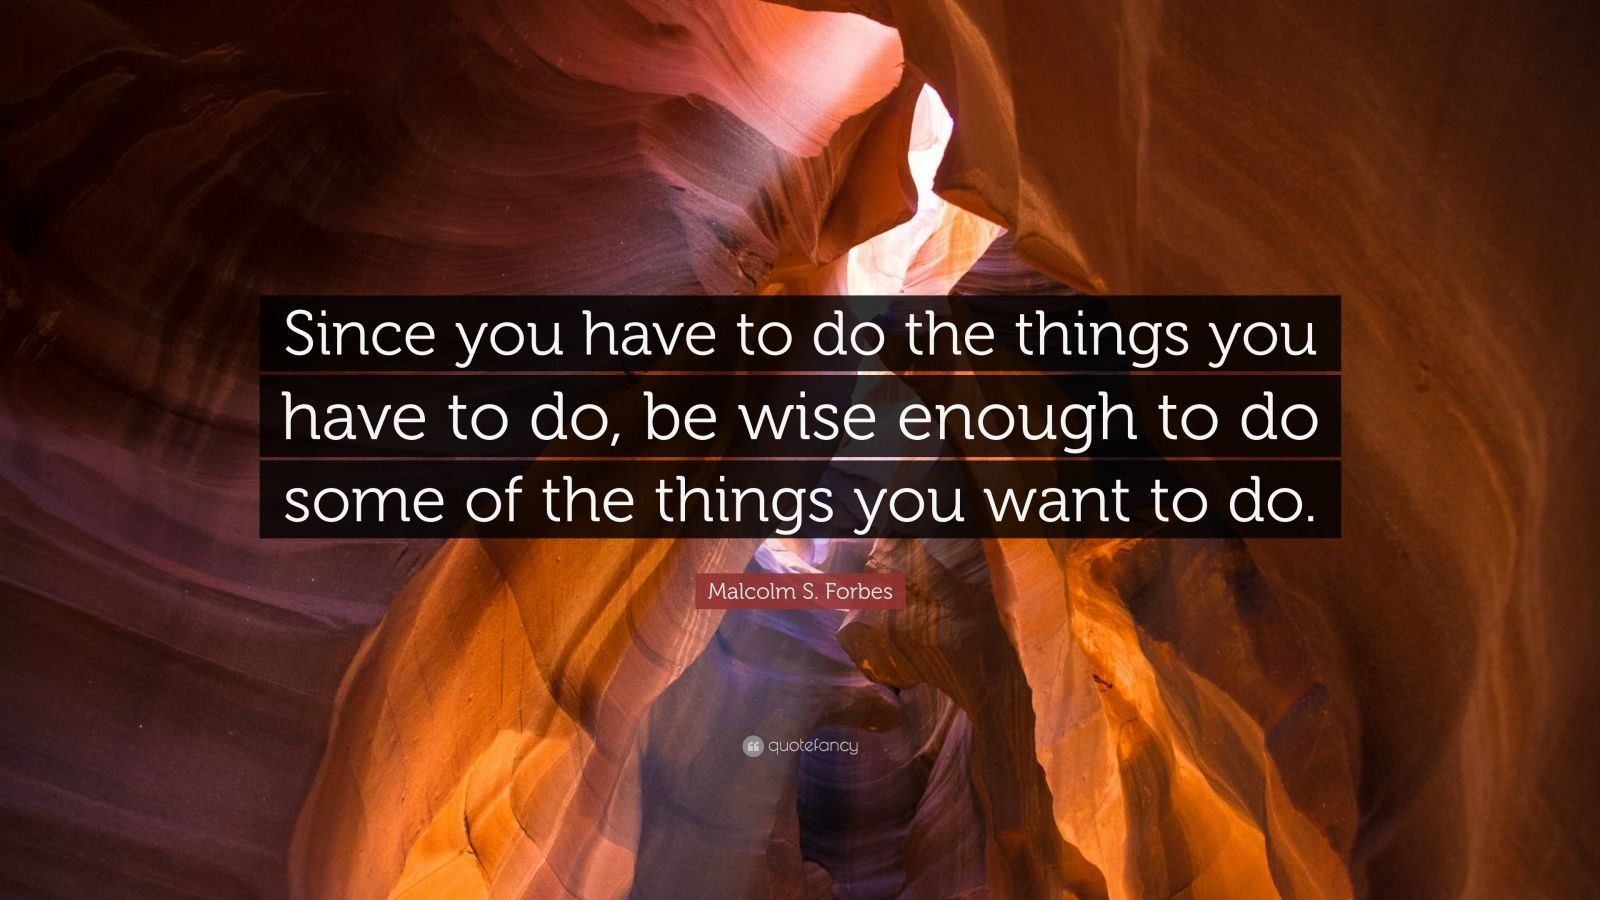 """Malcolm S. Forbes Quote: """"Since you have to do the things you have to do, be wise enough to do some of the things you want to do."""""""